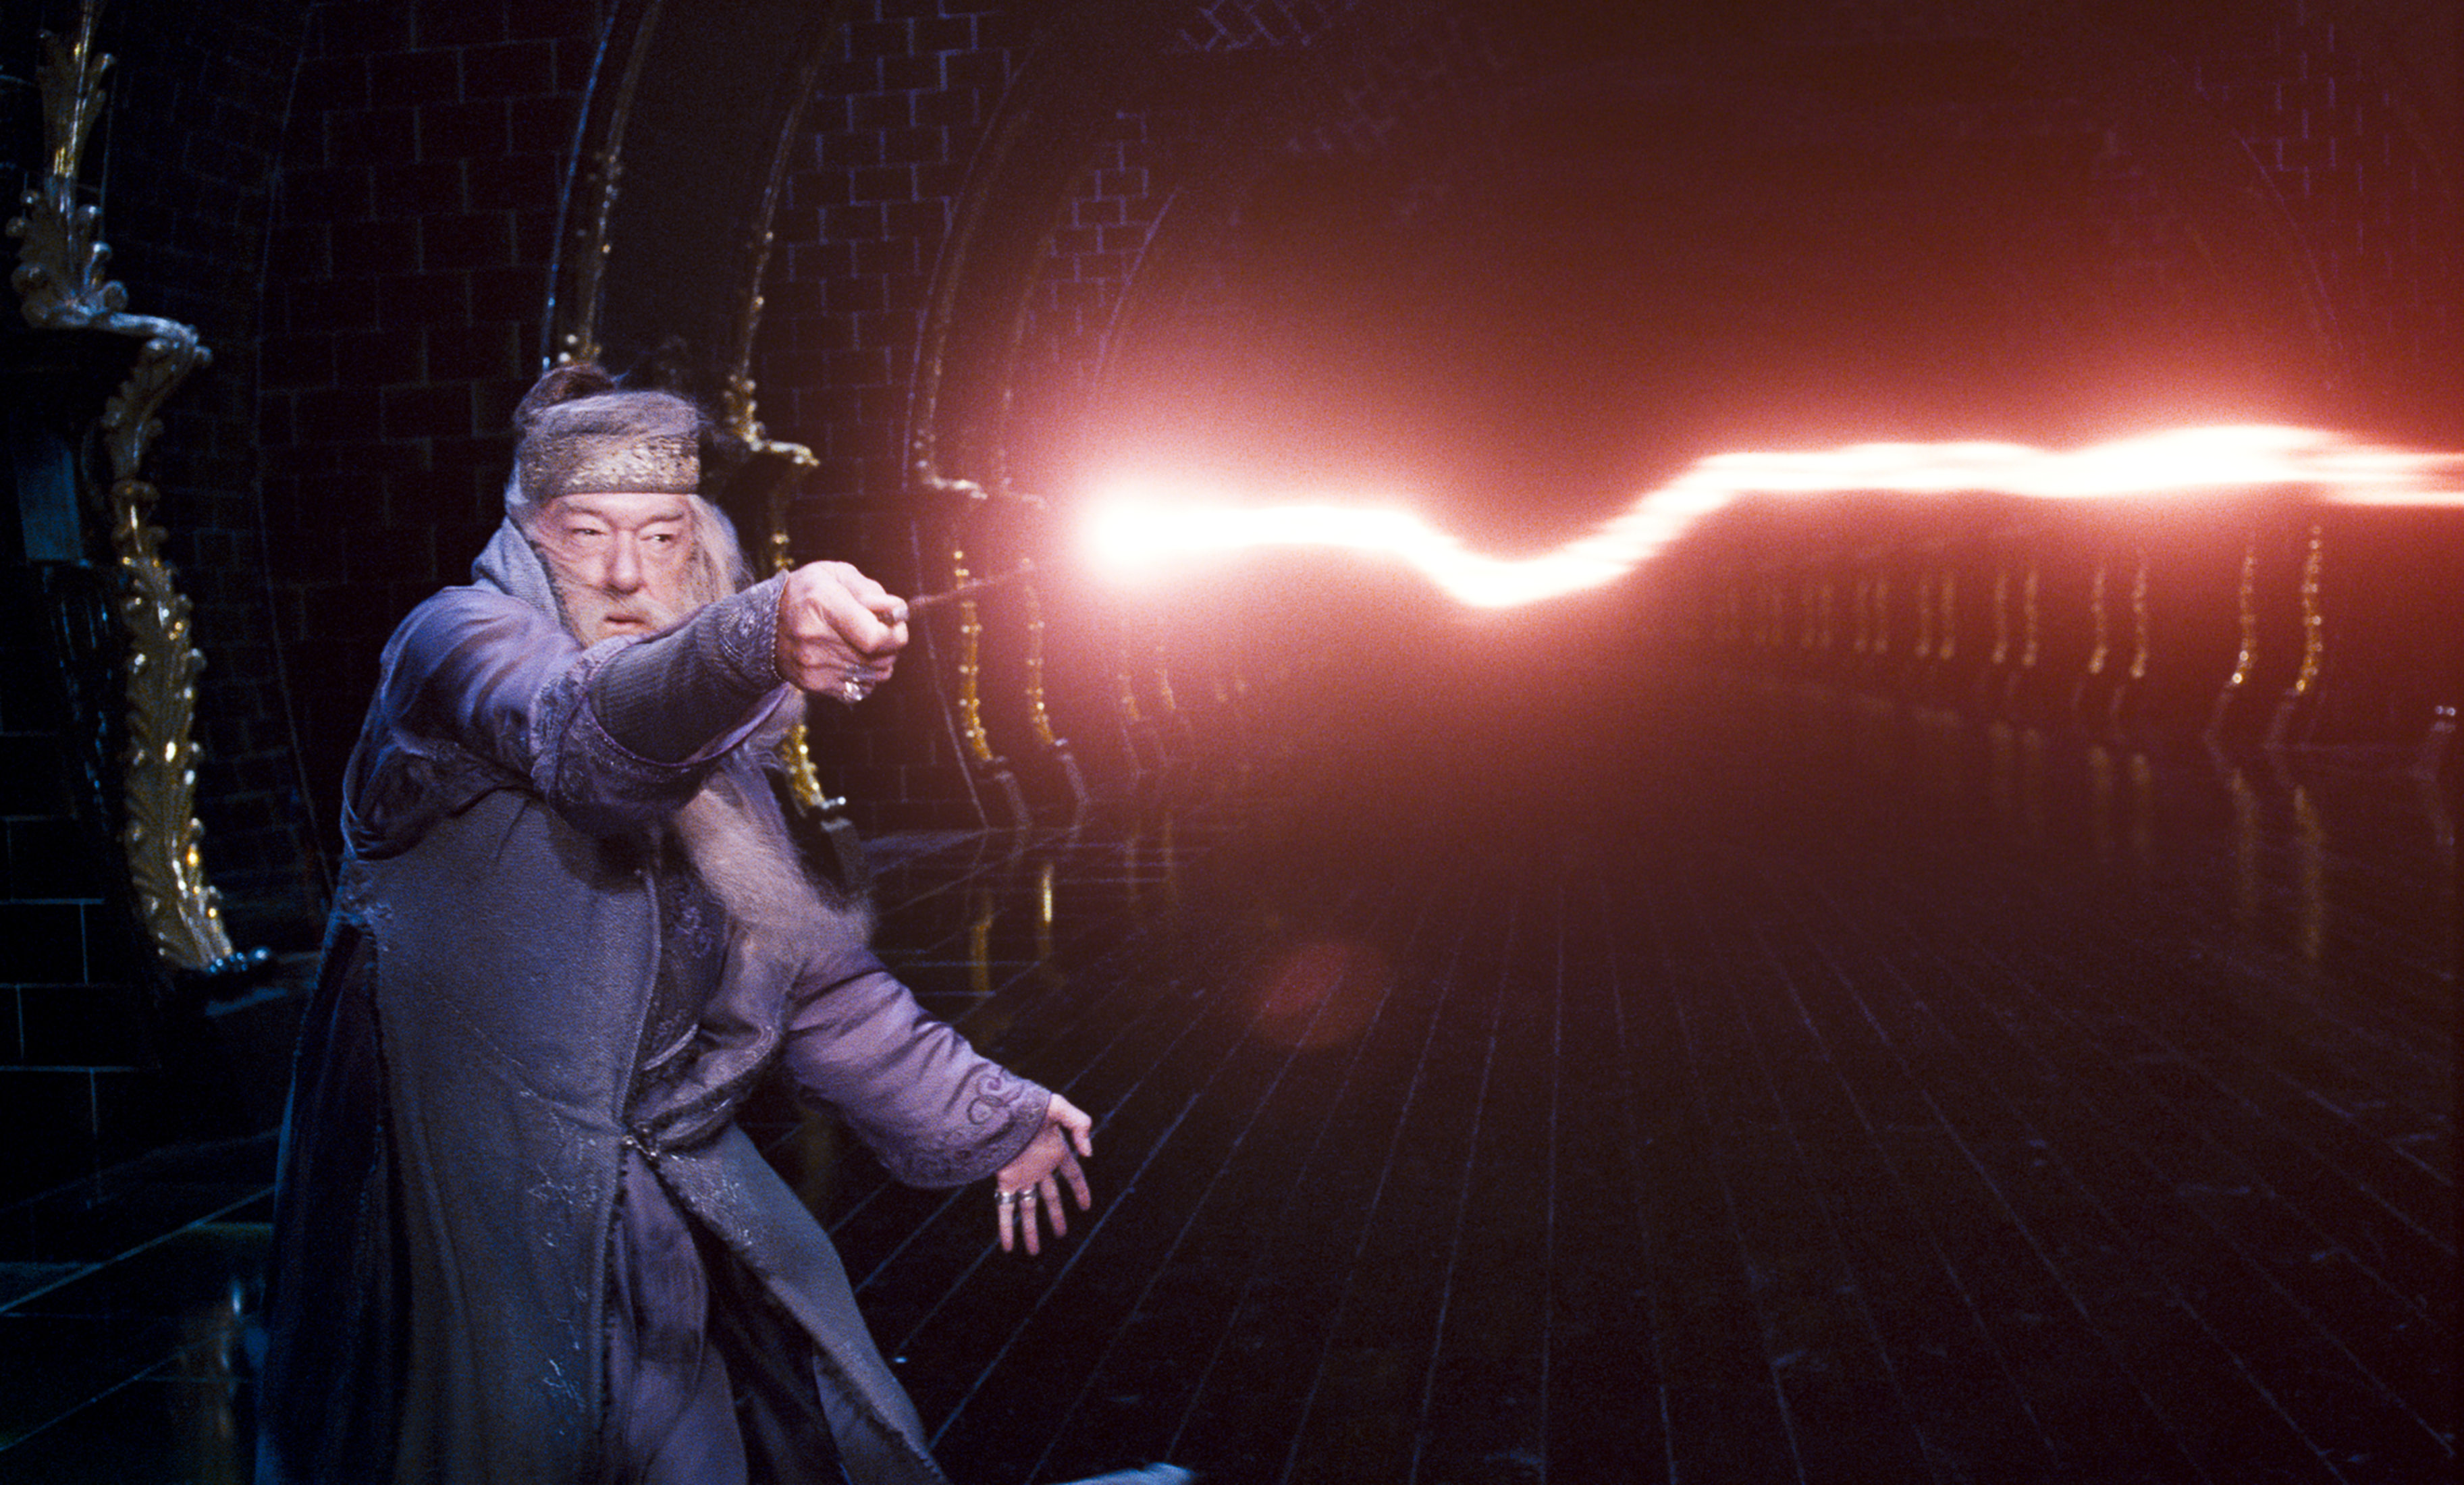 Spells all muggles wish existed in real life pottermore for Real elder wand